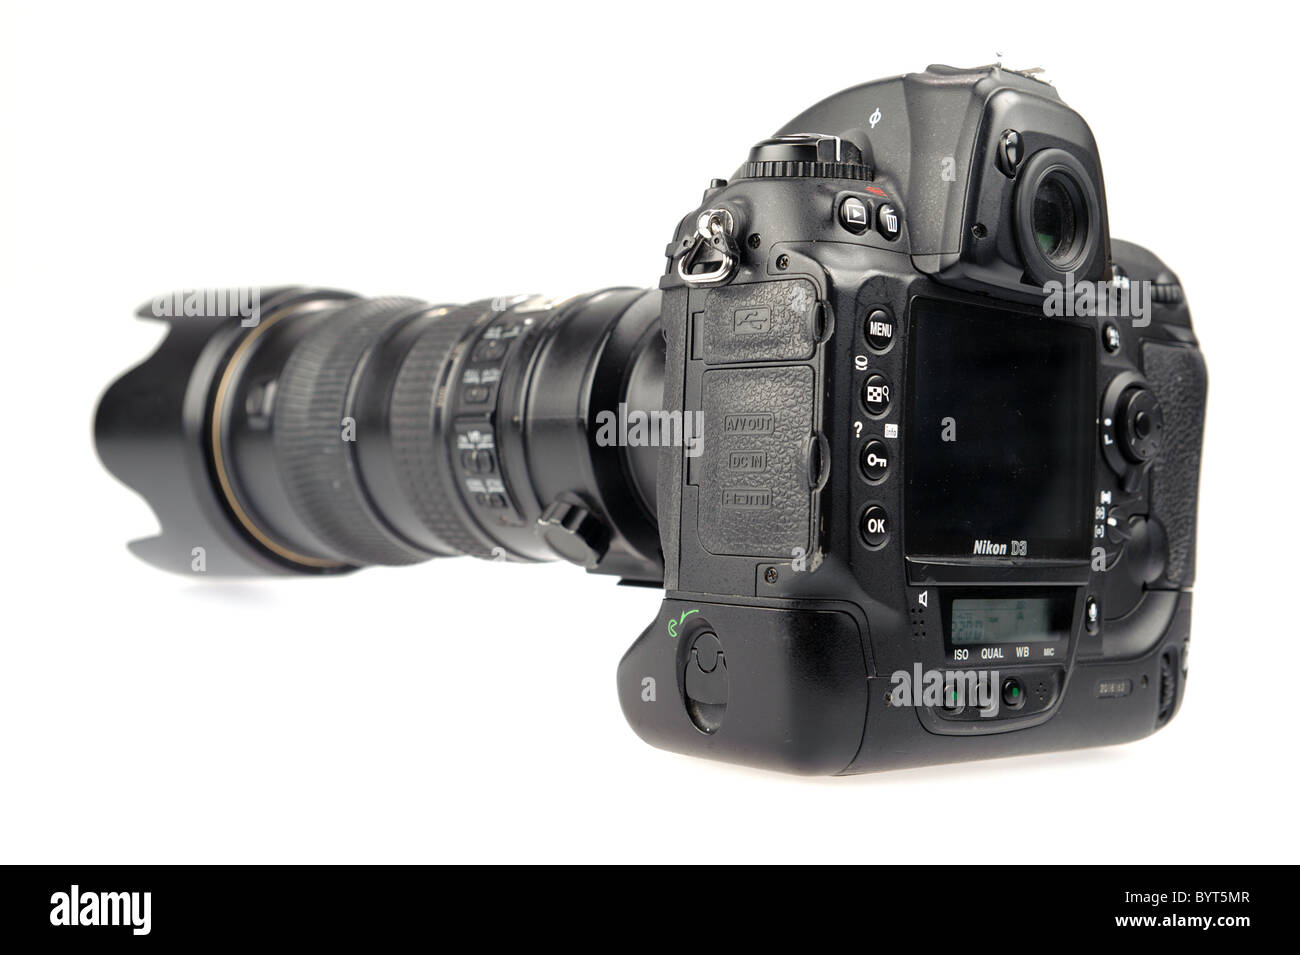 Rear view of a Nikon D3 digital camera with Nikkor 70-200mm 2.8 VR lens cutout on white background - Stock Image